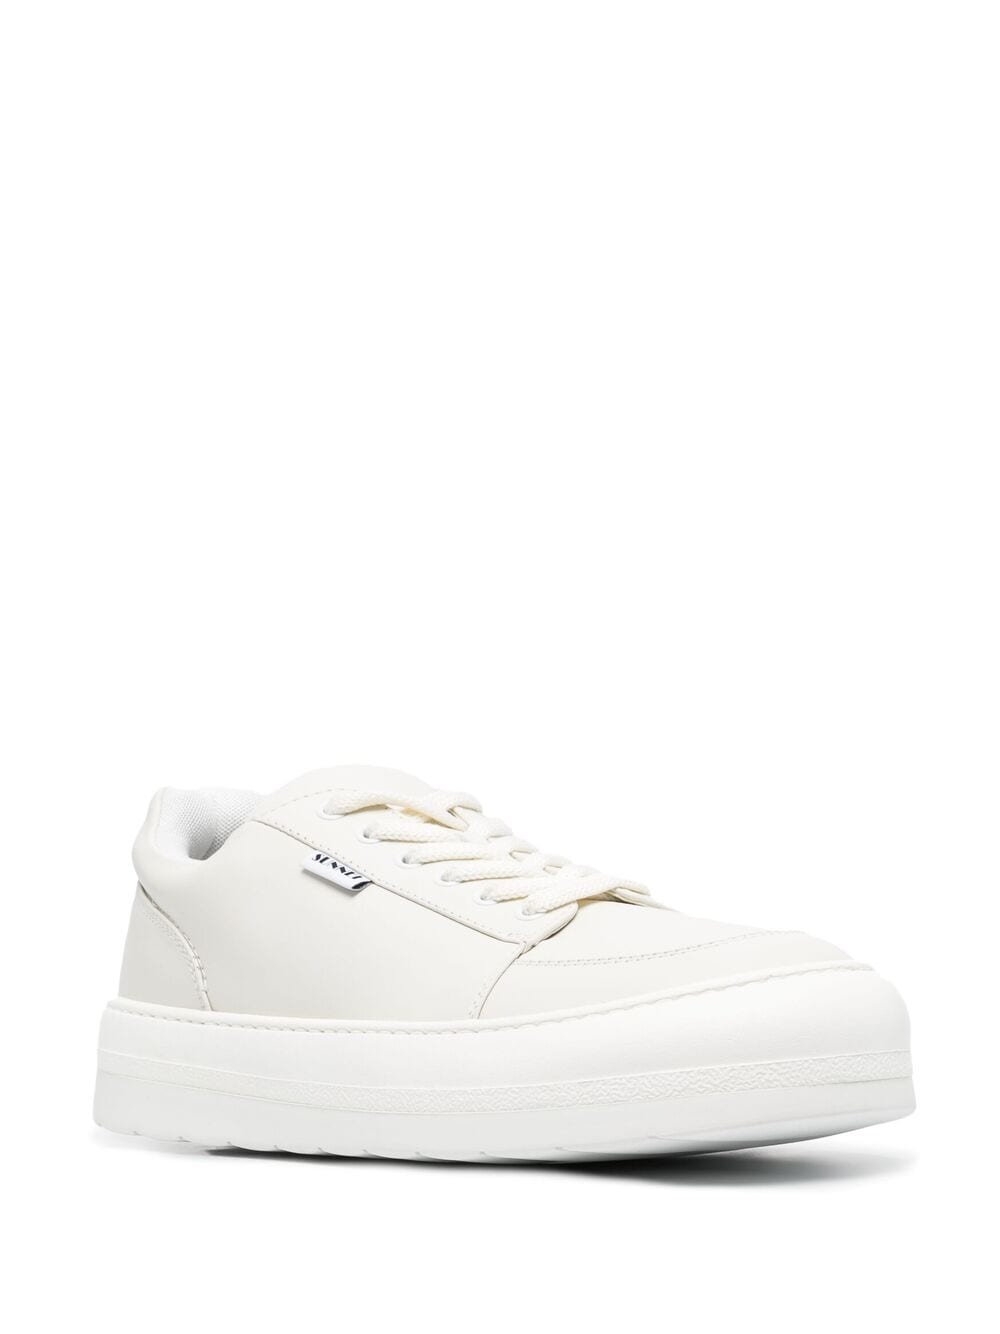 Sunnei logo patch detail sneakers man white SUNNEI | Sneakers | D04OFFWHITE